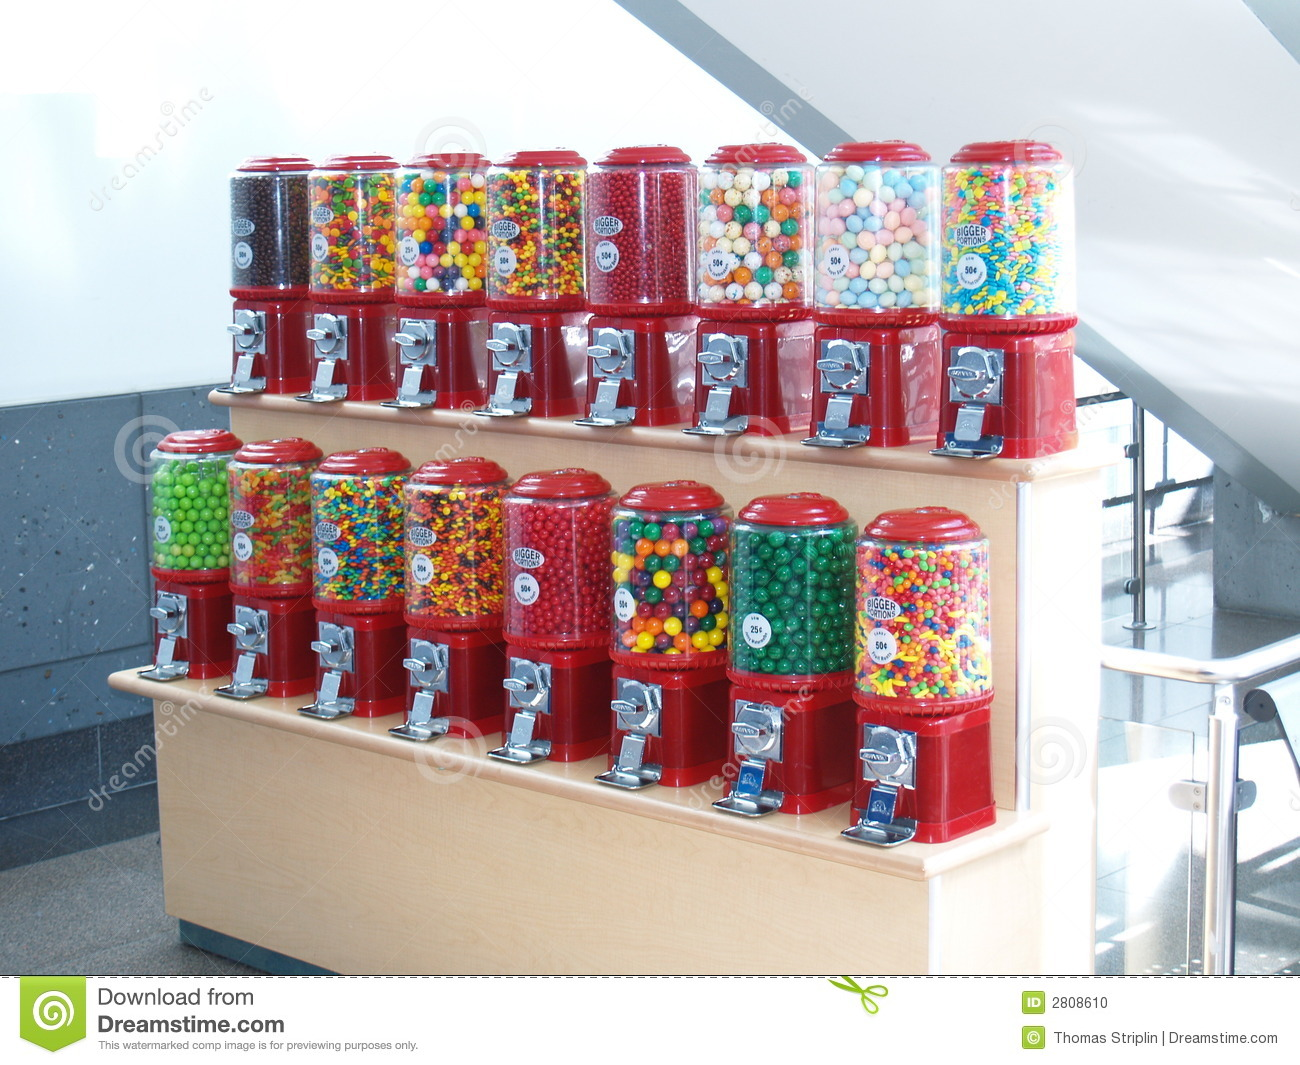 Candy Machines Stock Photo Image 2808610 : candy machines 2808610 from www.dreamstime.com size 1300 x 1065 jpeg 395kB